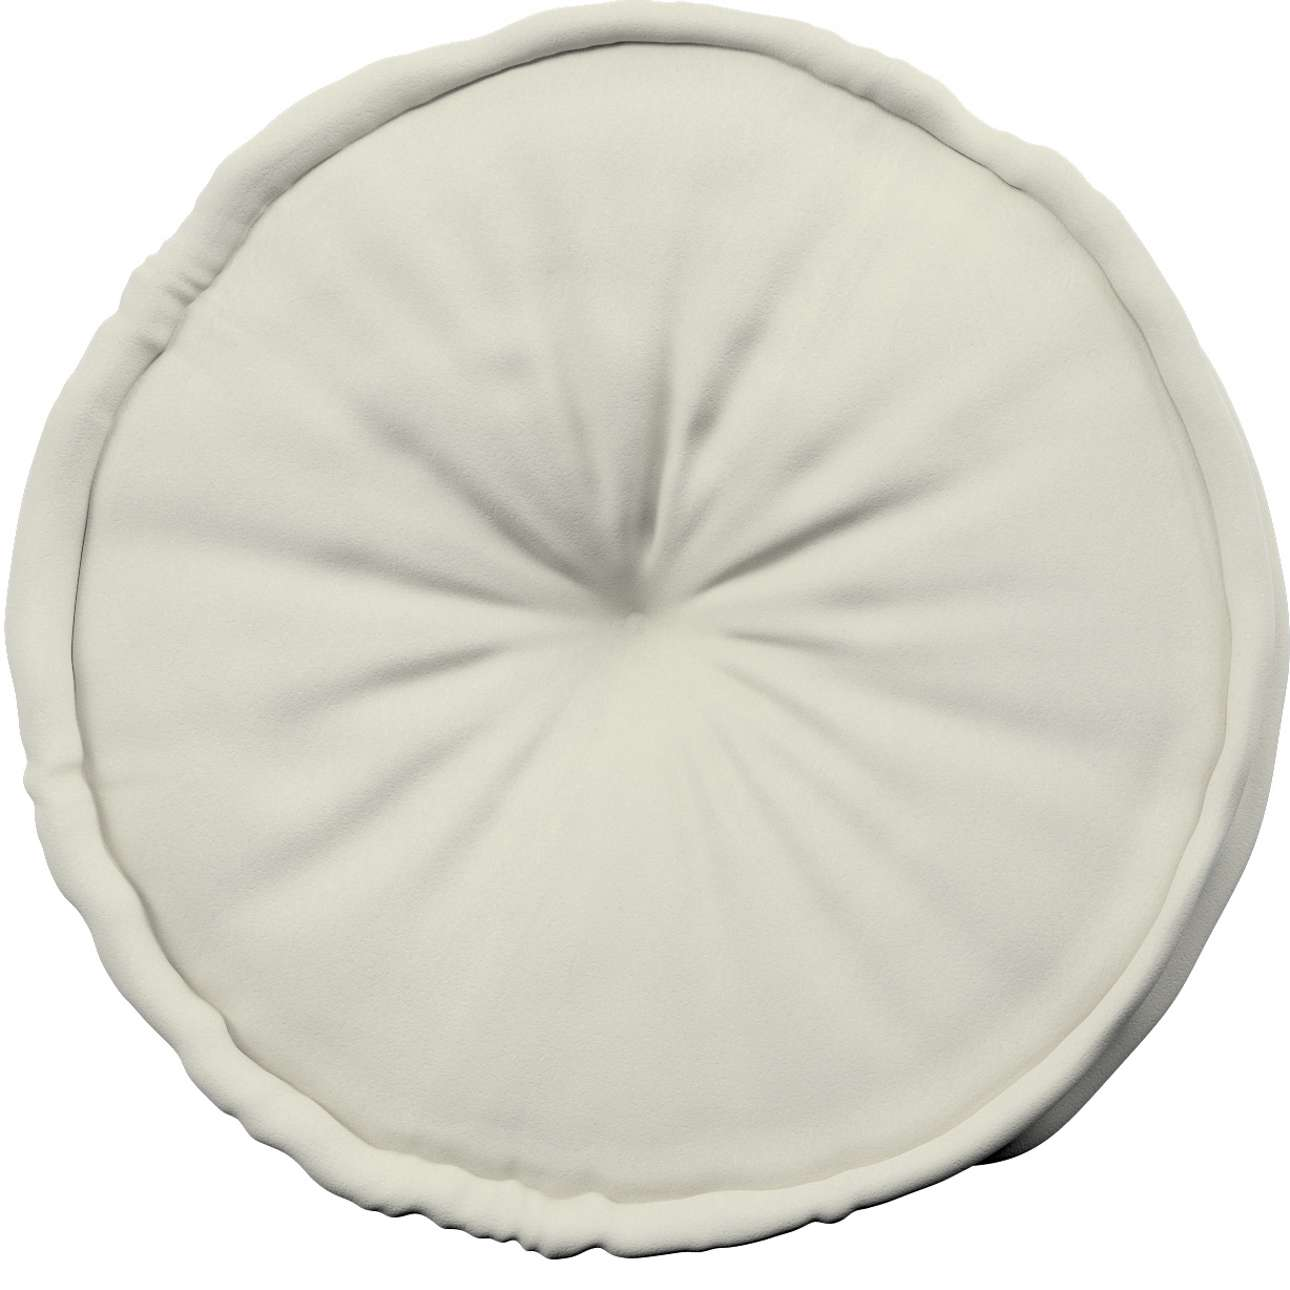 French pouf in collection Posh Velvet, fabric: 704-10